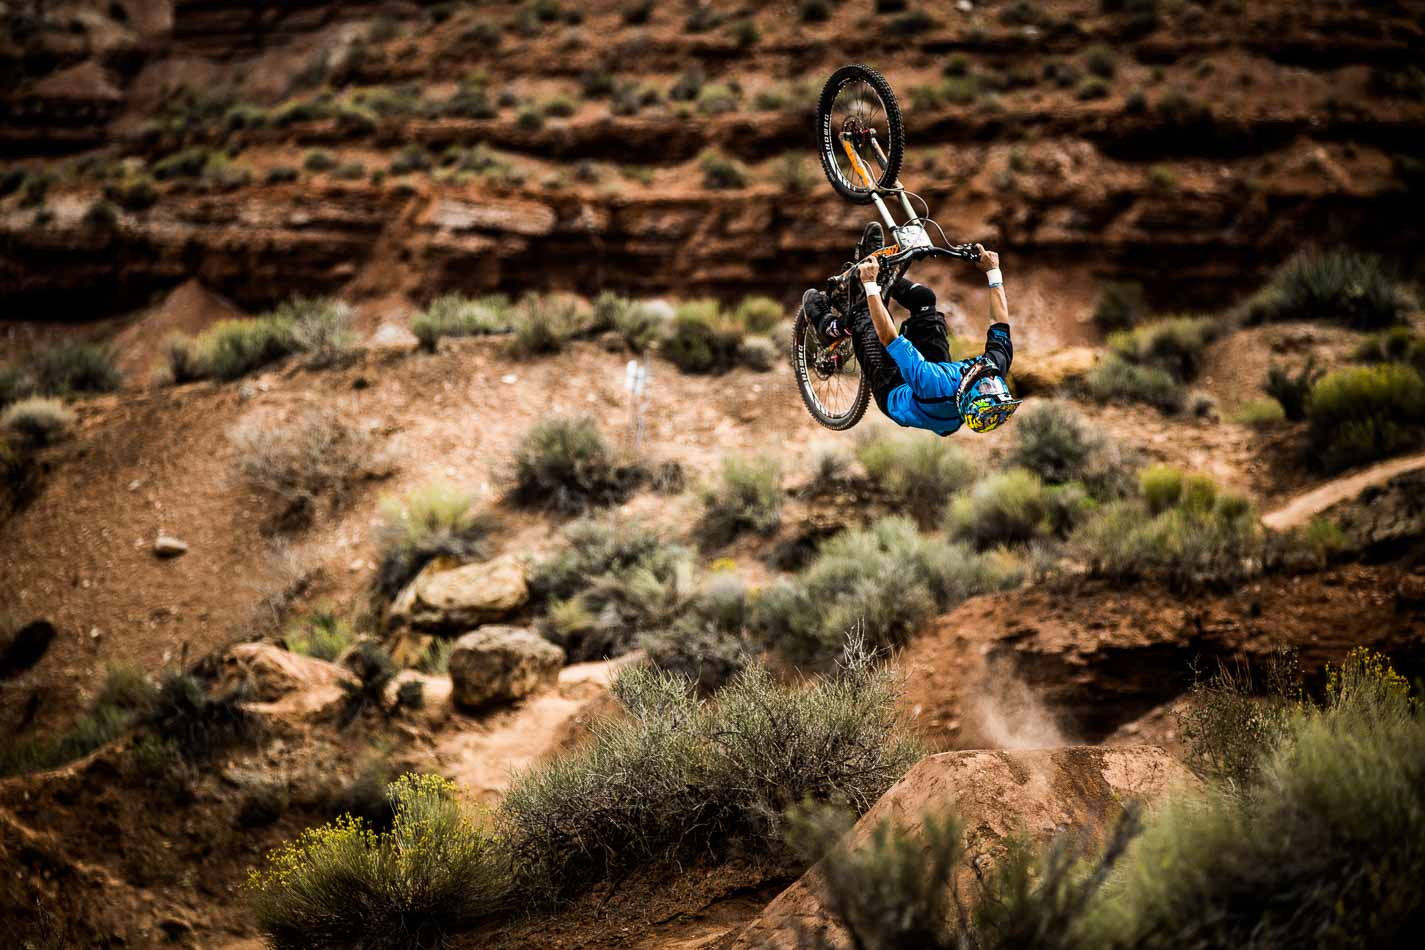 Despite a fourth-place finish in the 2012 Rampage, some would argue that James Doerfling has never unleashed his full potential at this contest. However, if his eighth-place qualifying position holds steady until Sunday, he might get the opportunity to show the world what lies beneath.